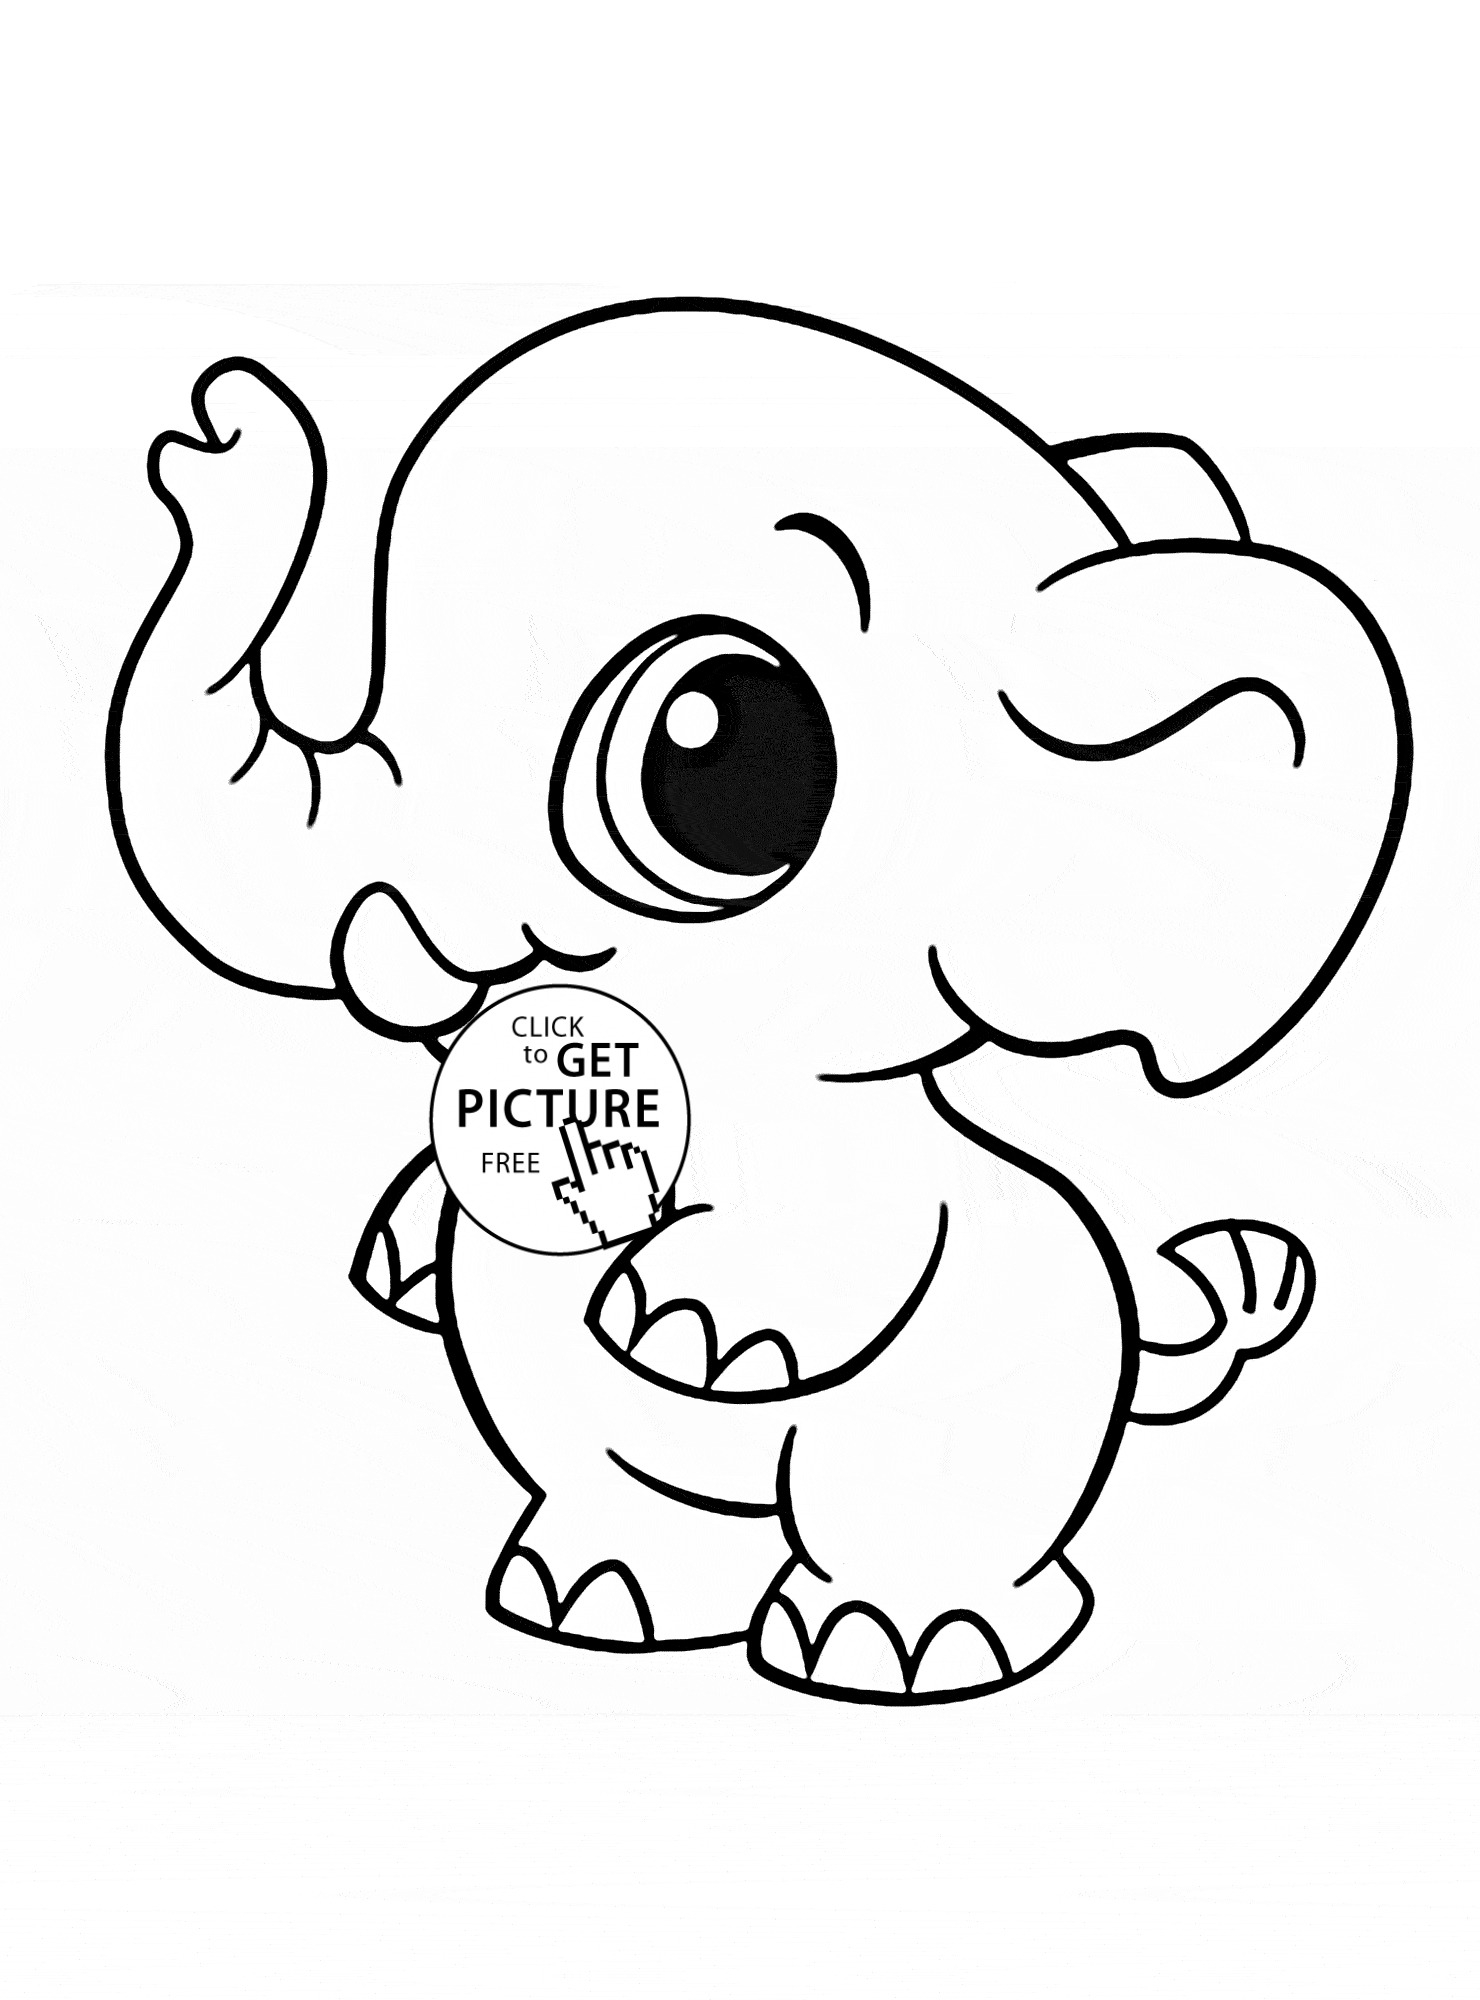 coloring pages you can print Collection-Elephant Coloring Pages Printable Elephant Coloring Pages Unique Color Page New Children Colouring 0d 12-s